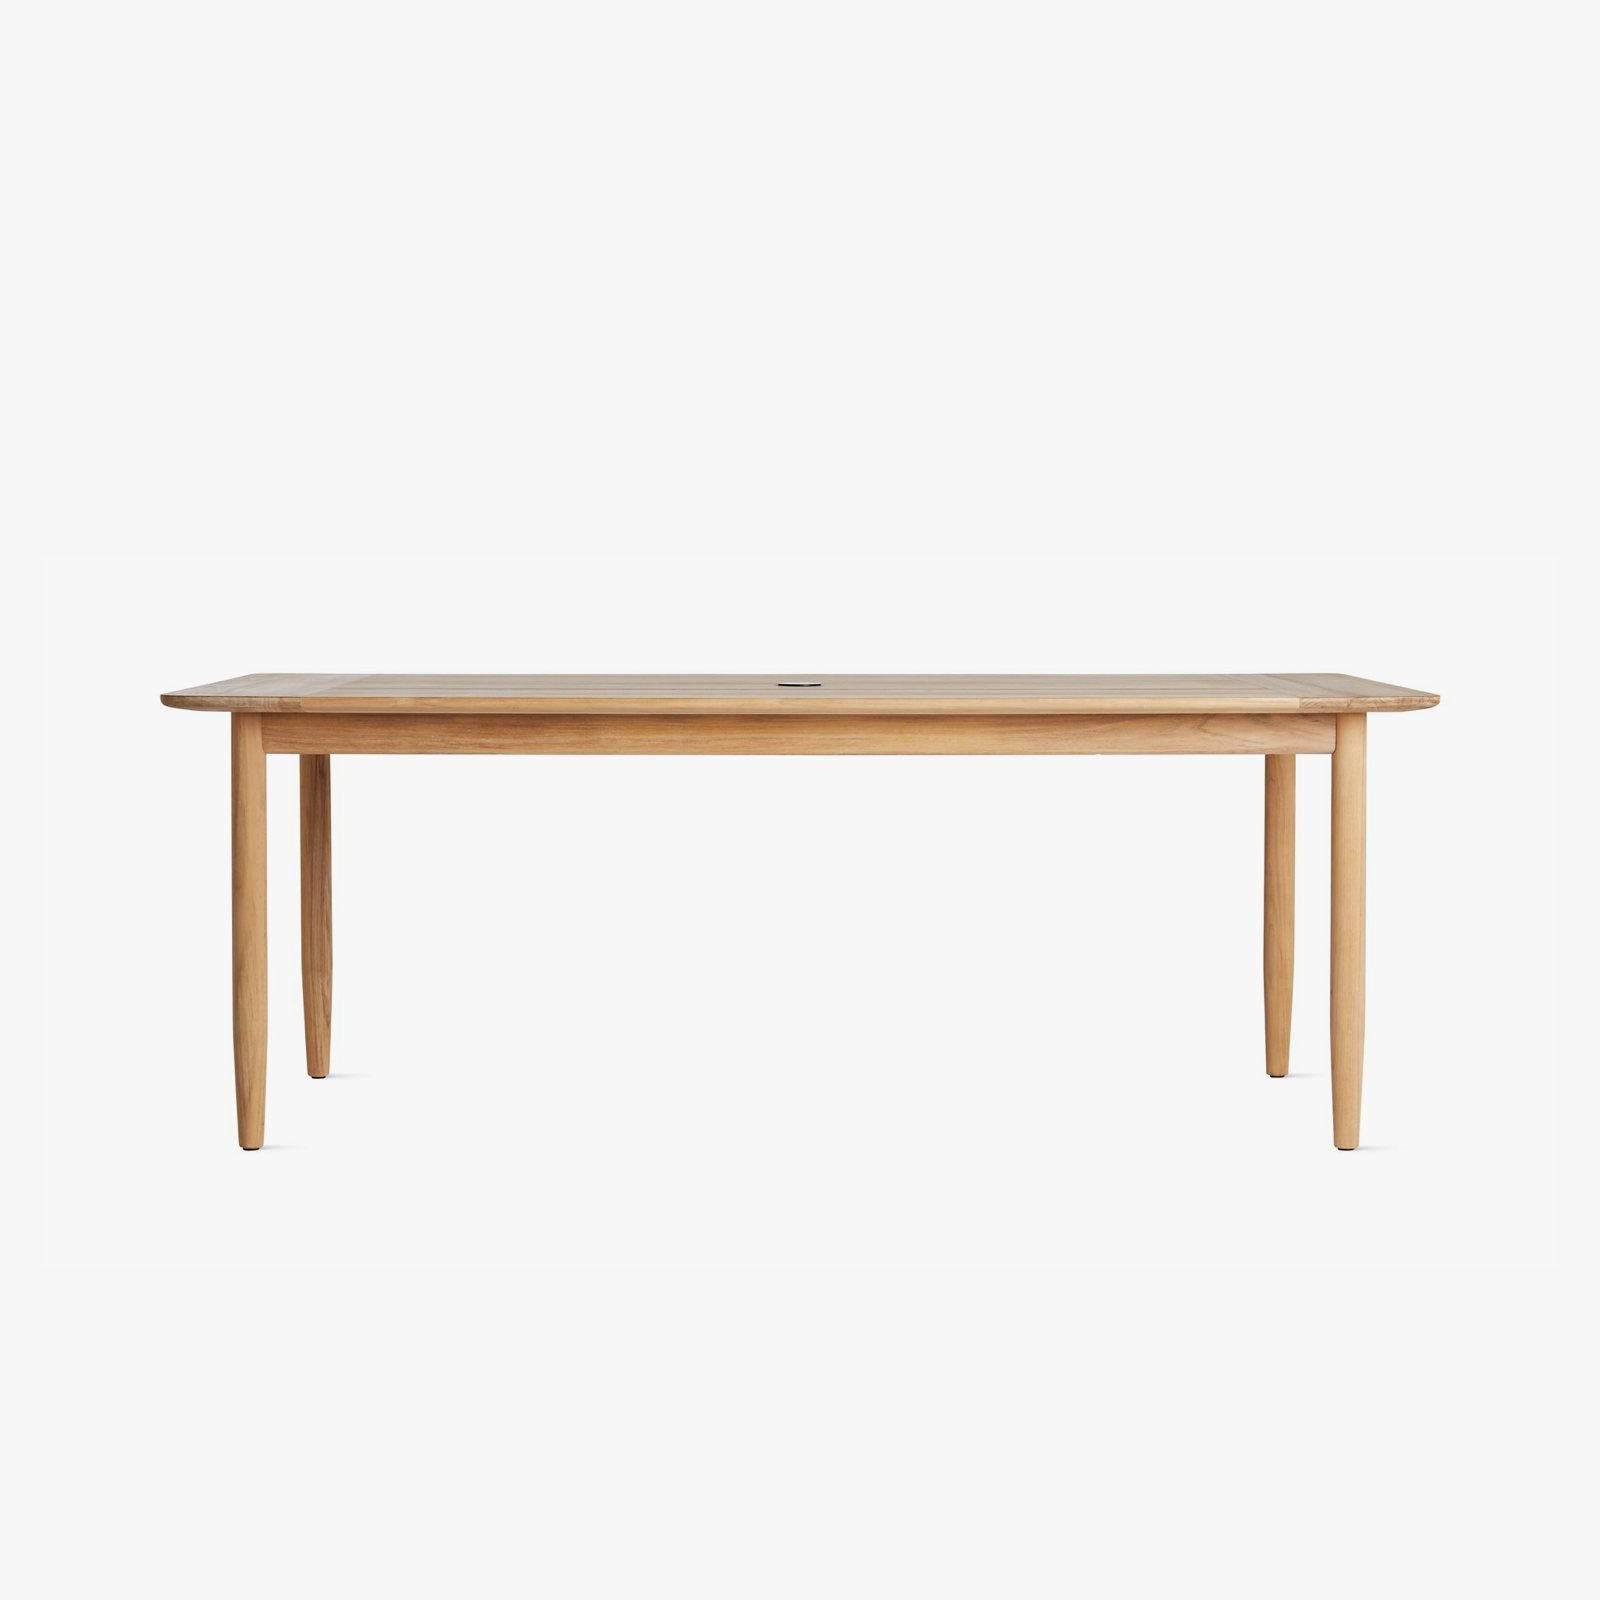 Terassi Dining Table By Studio Tolvanen For Design Within Reach Up